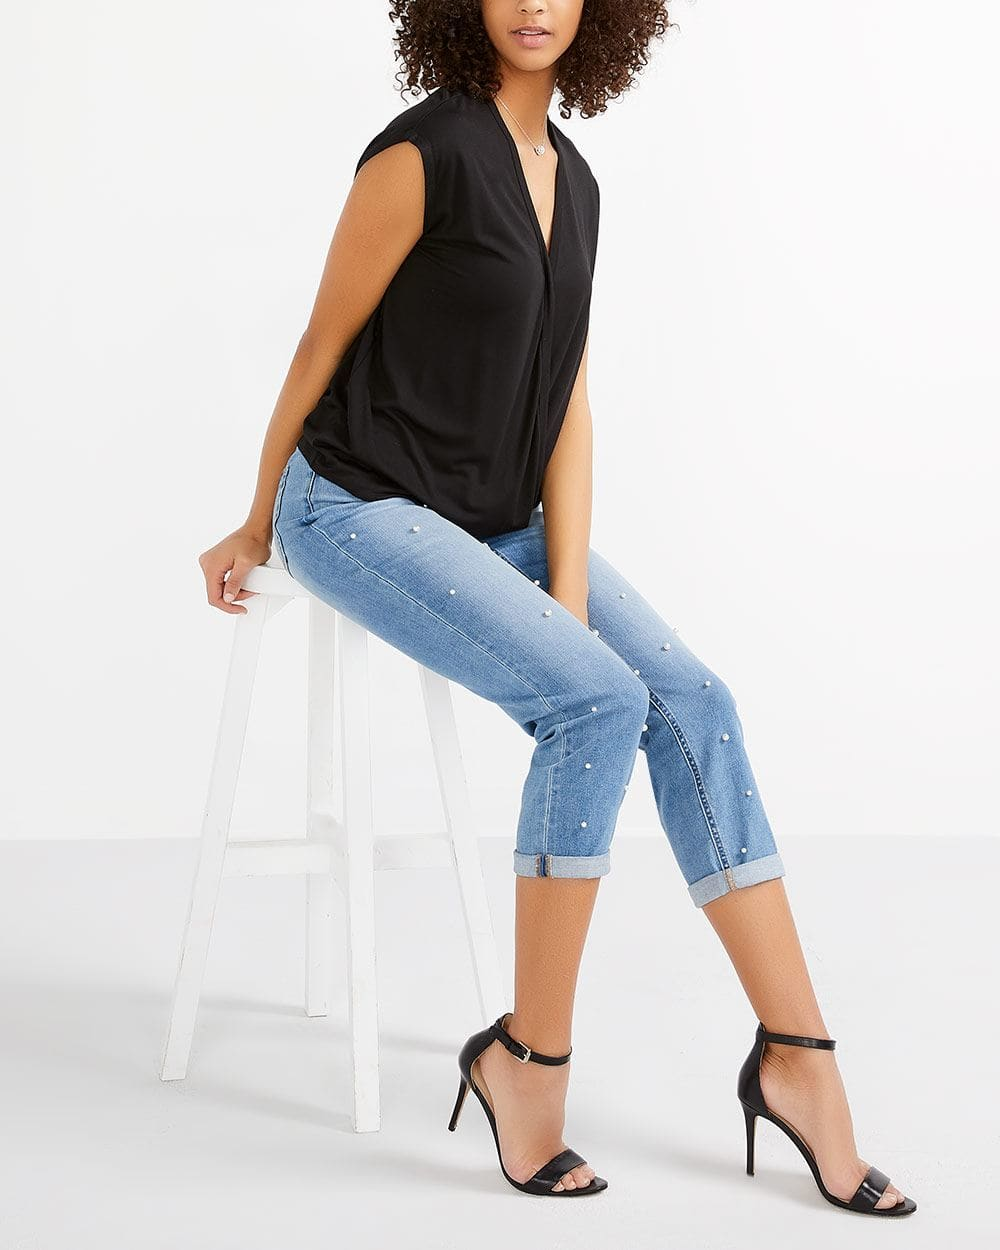 Cap Sleeve Wrap Top